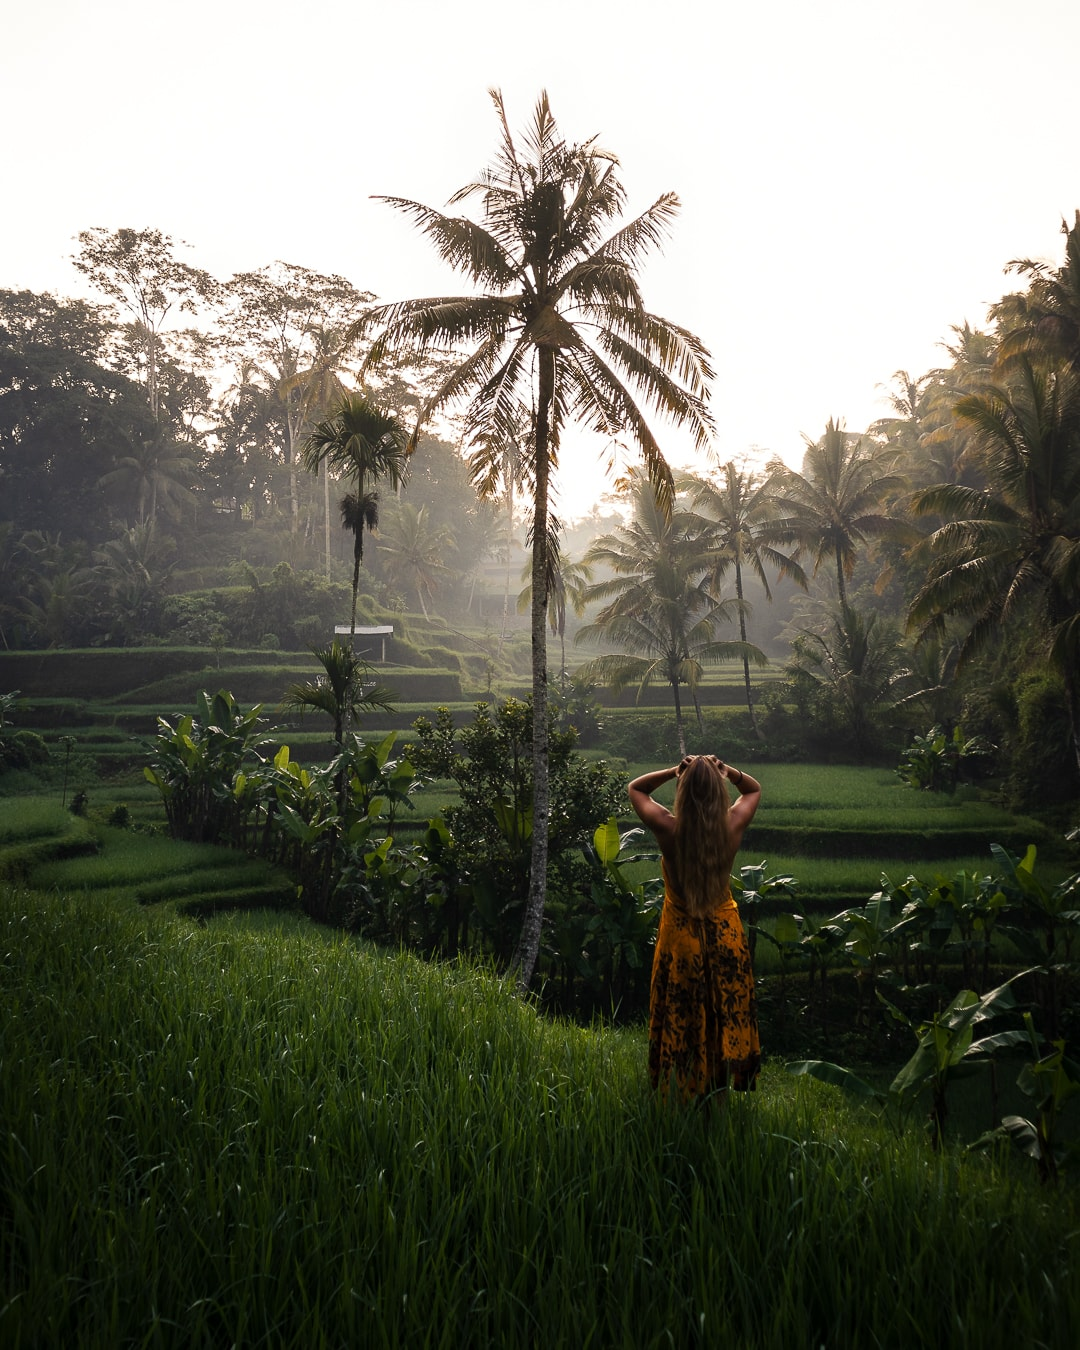 Travel picture by Danja Keller at the famous Tegallalang Rice Terrace in Bali, Indonesia She is wearing an orange dress.